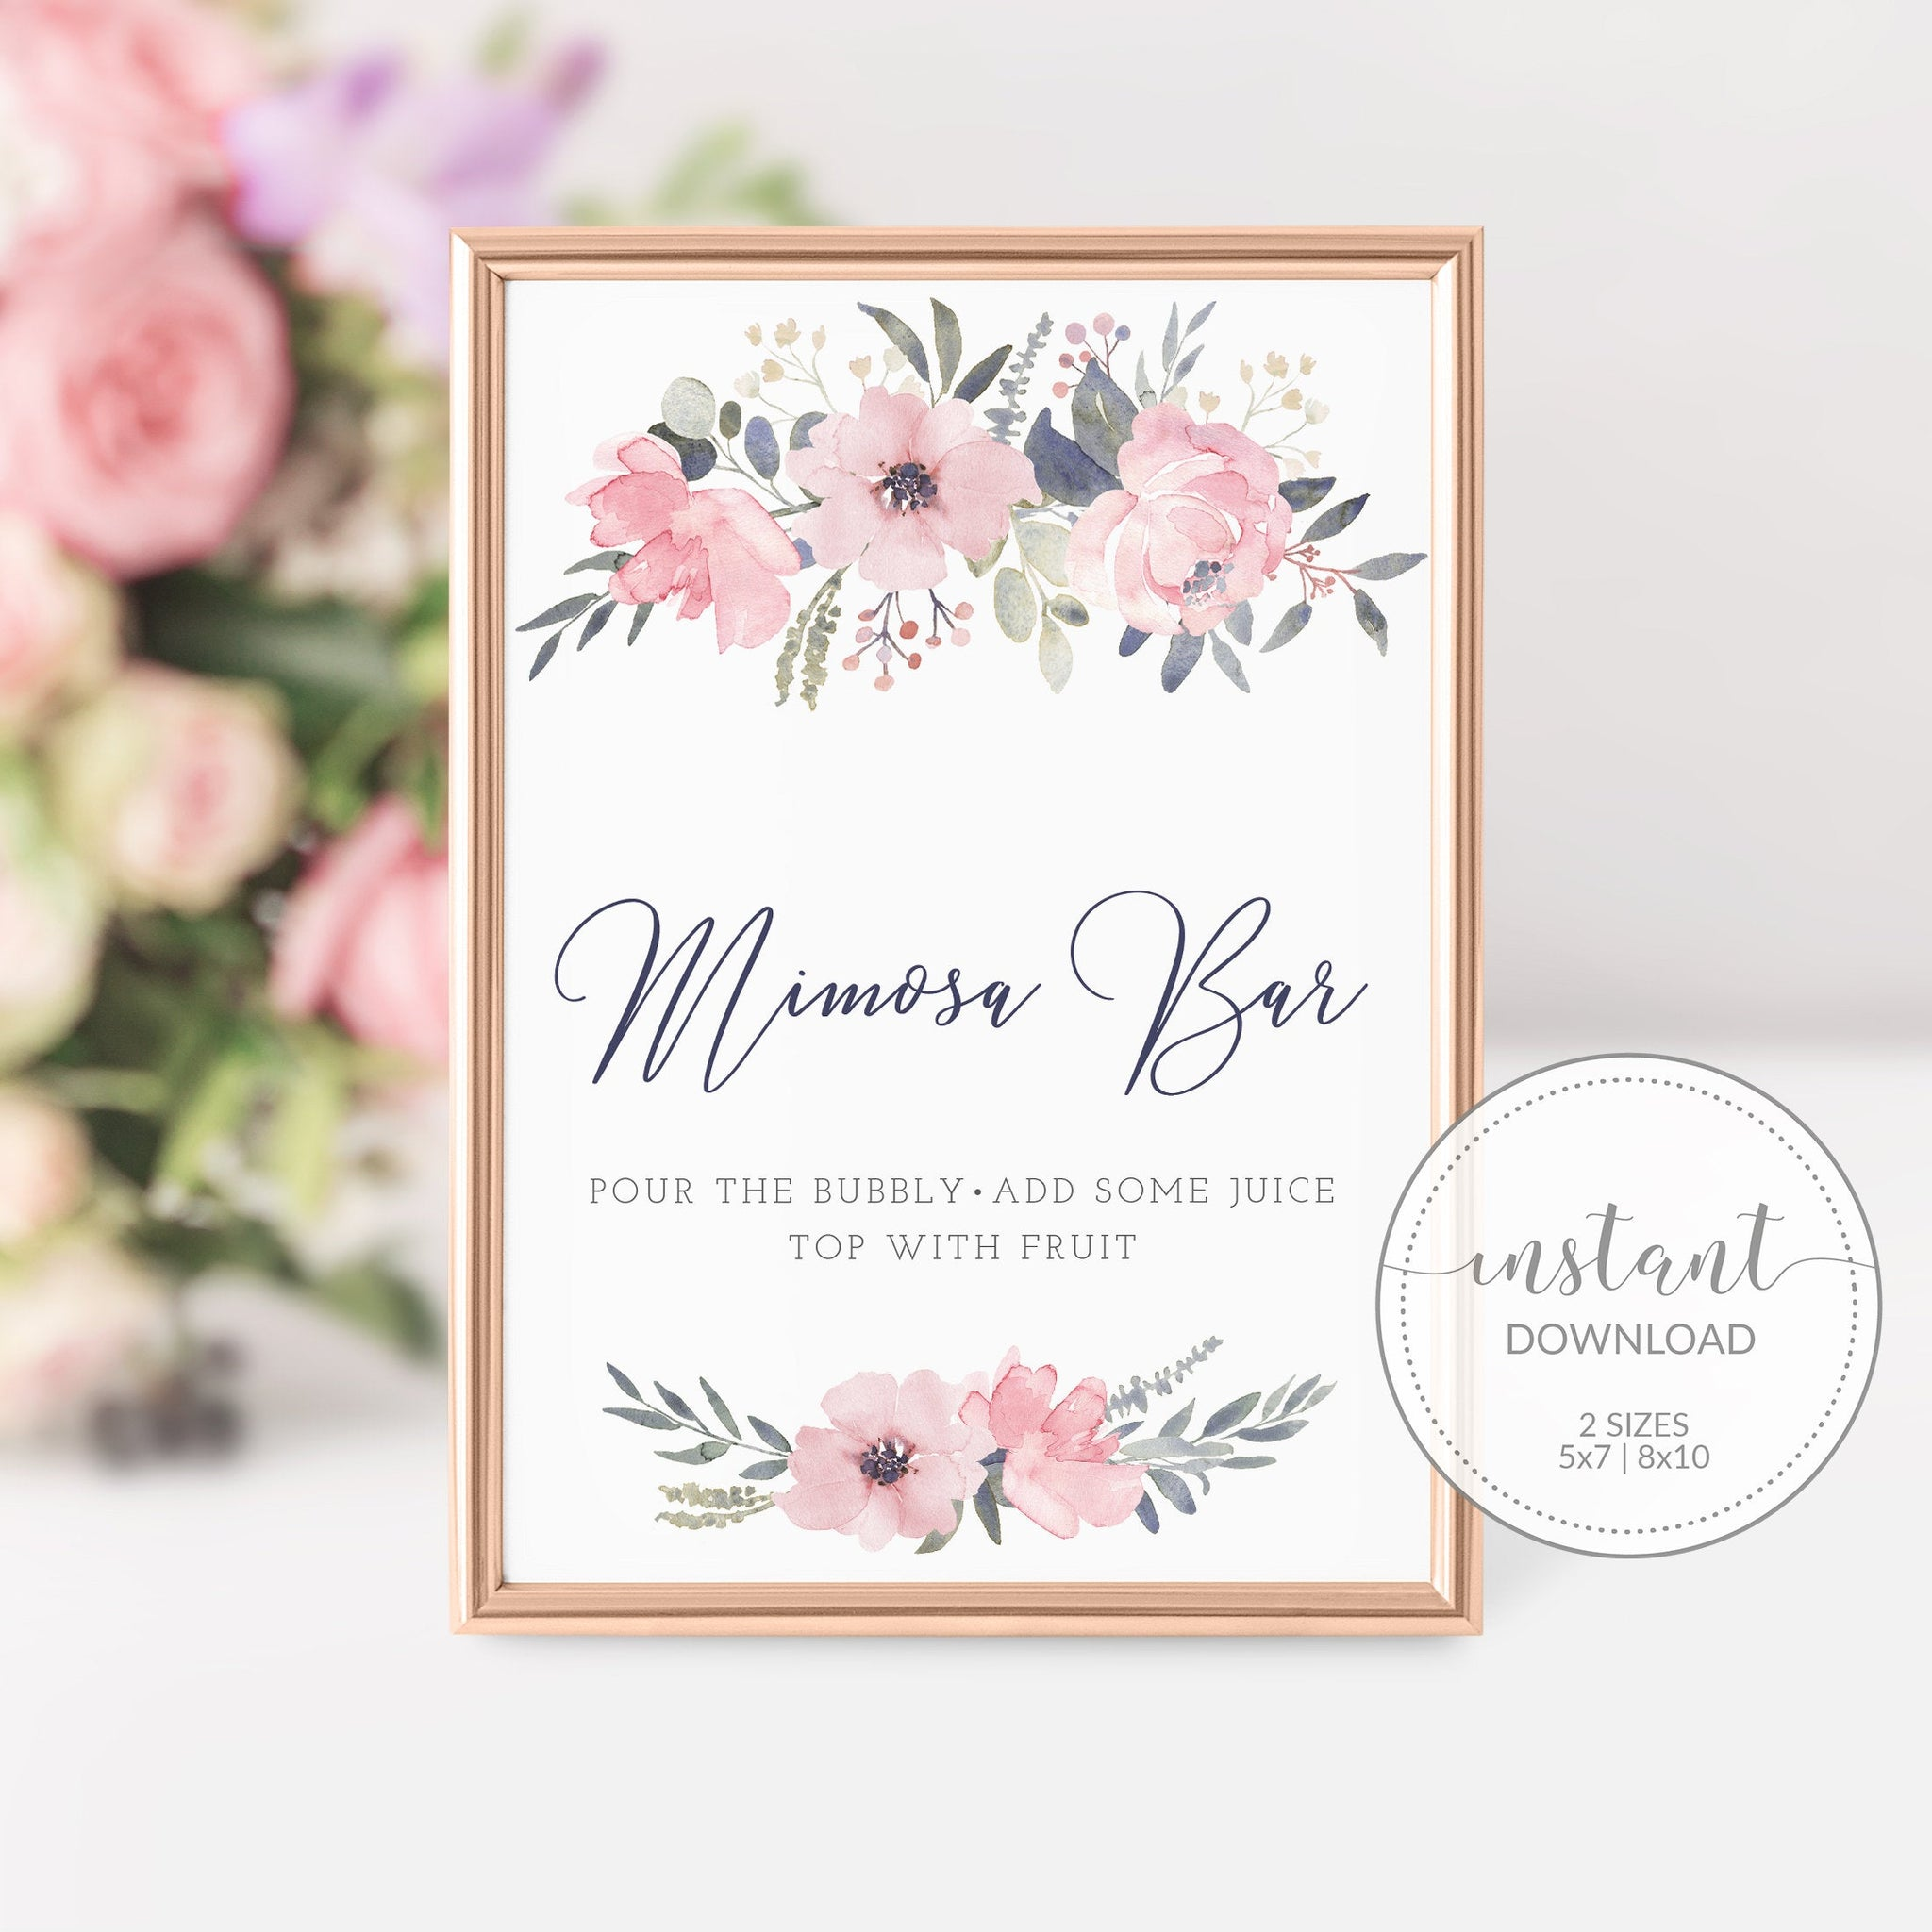 Navy and Blush Floral Mimosa Bar Printable Sign INSTANT DOWNLOAD, Birthday, Bridal Shower, Baby Shower, Wedding Decorations Supplies - NB100 - @PlumPolkaDot